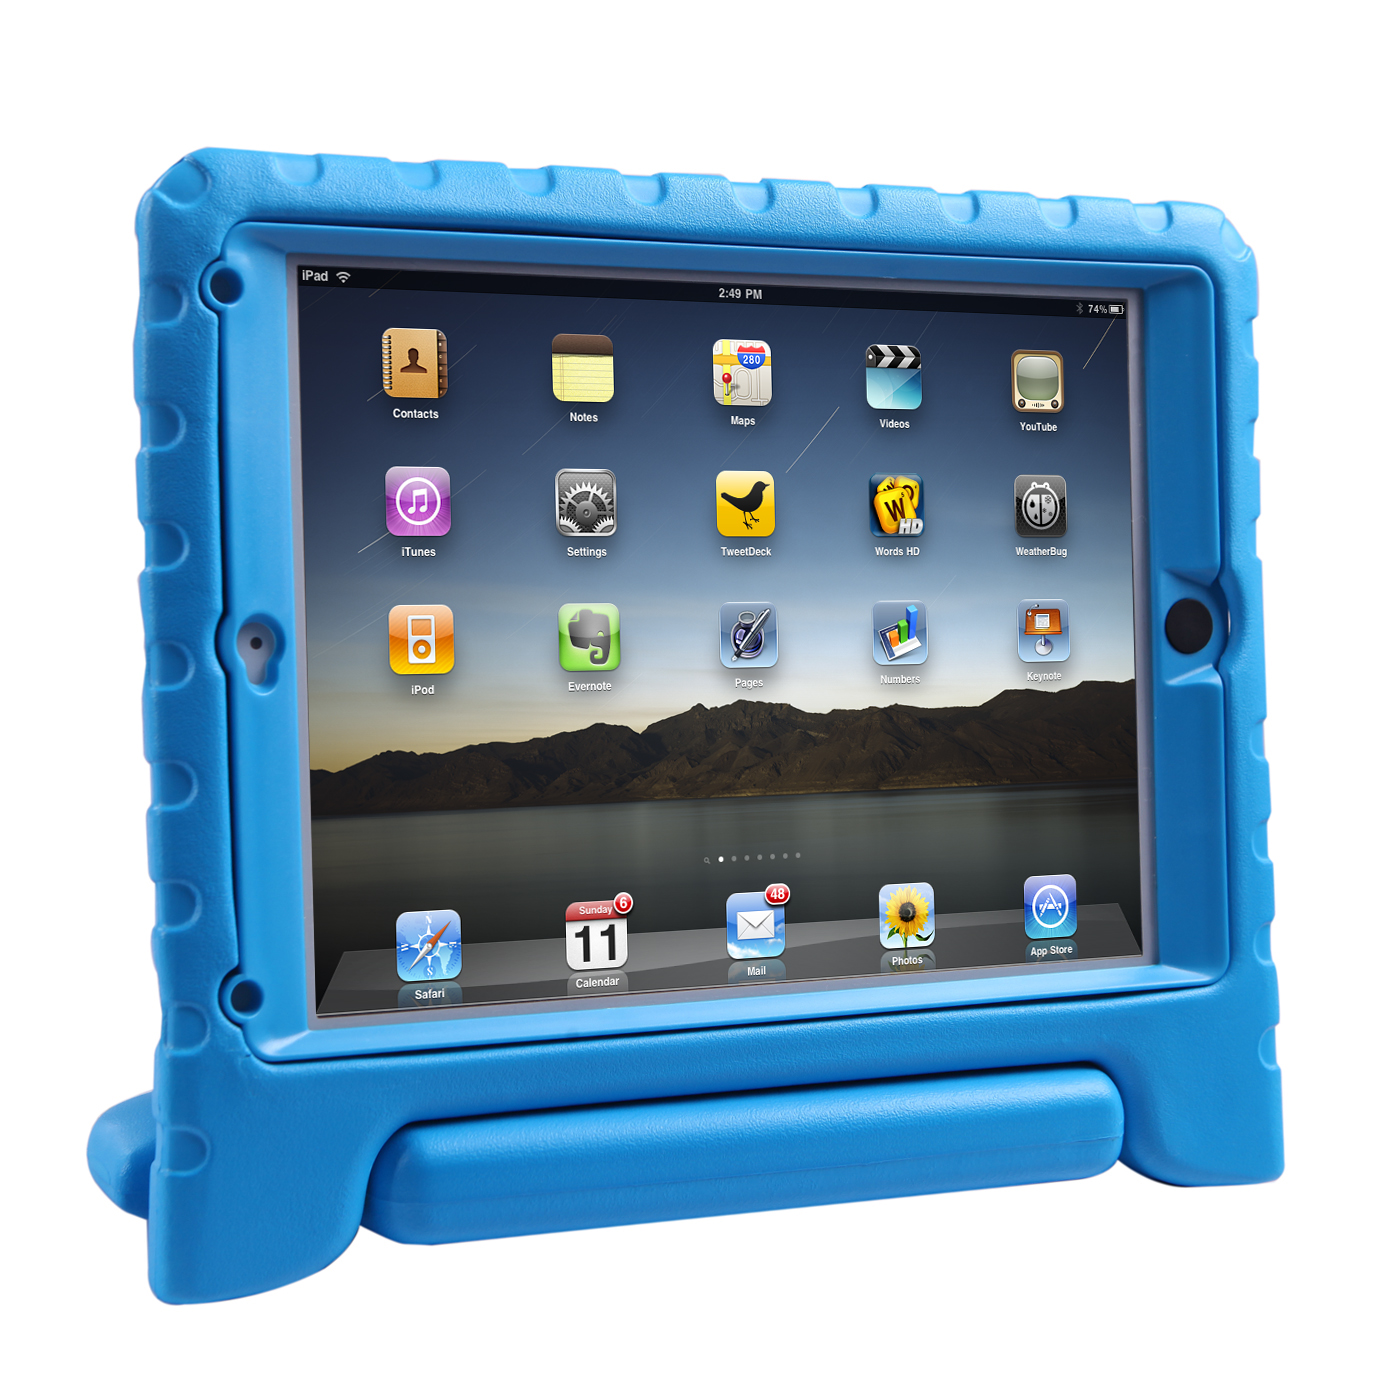 HDE iPad Air Bumper Case for Kids Shockproof Hard Cover Handle Stand with Built in Screen Protector for Apple iPad Air 1 (Blue)